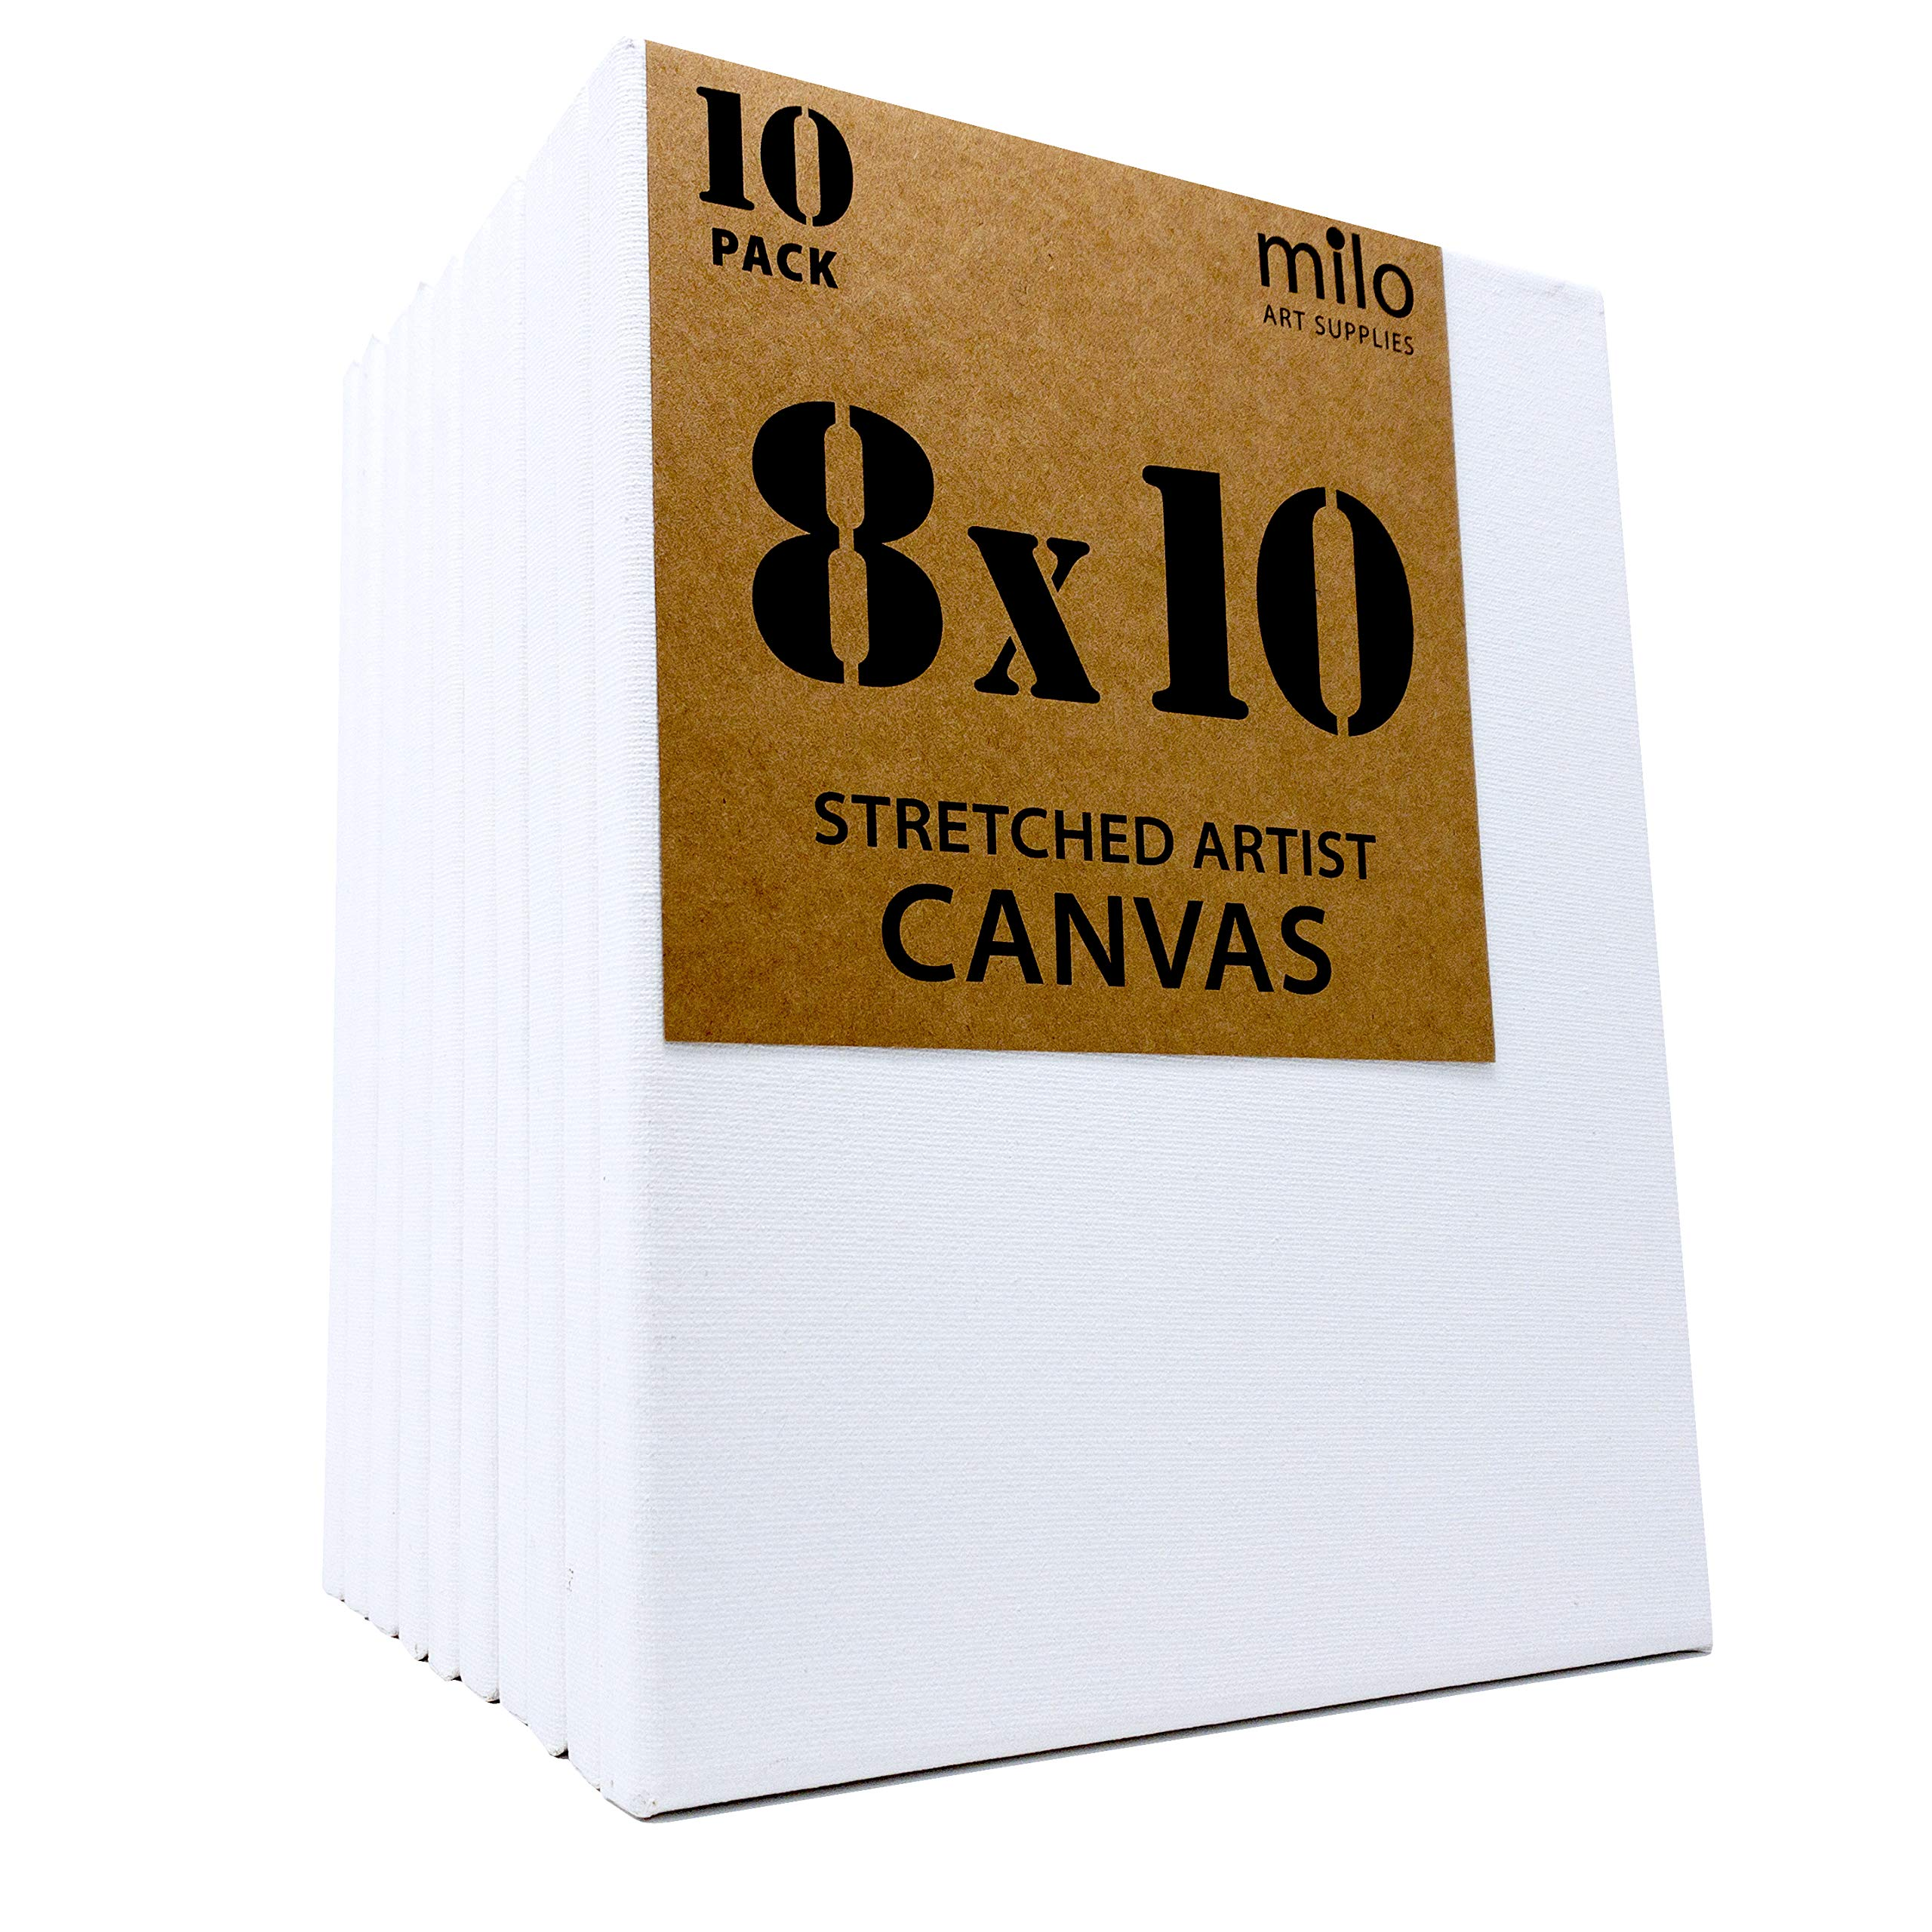 MILO | 8 x 10'' Pre Stretched Artist Canvas Value Pack of 10 | Primed Cotton Art Canvas Set for Painting | Ready to Paint Art Supplies | 10 White Blank Canvases by milo